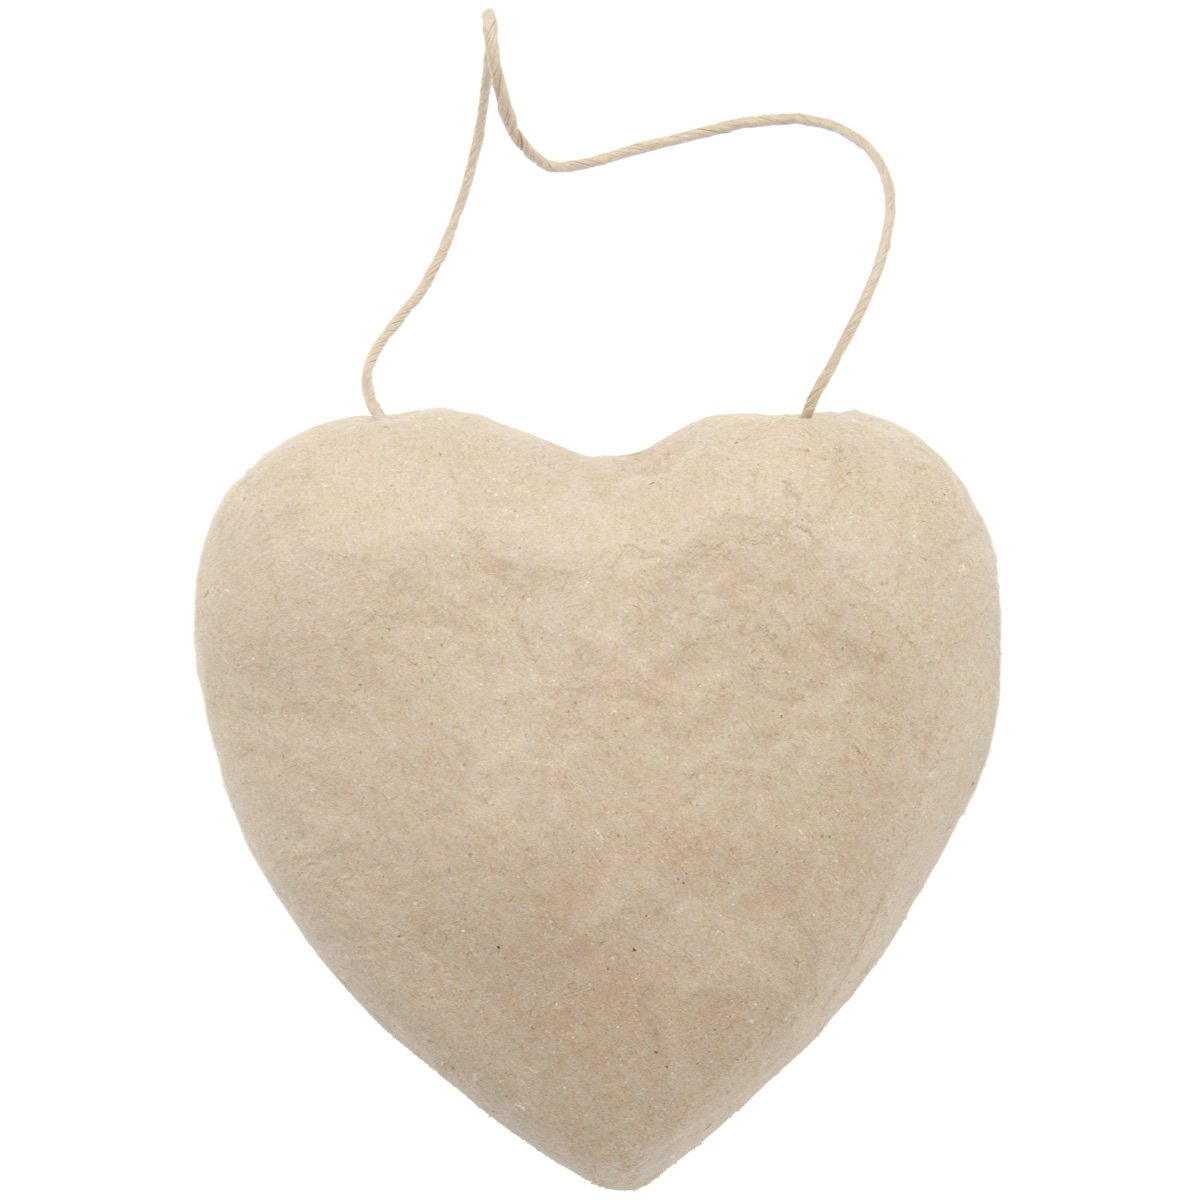 Darice 2833-44 Paper Mache Puffy Heart with String, 5.5-Inch DARCB